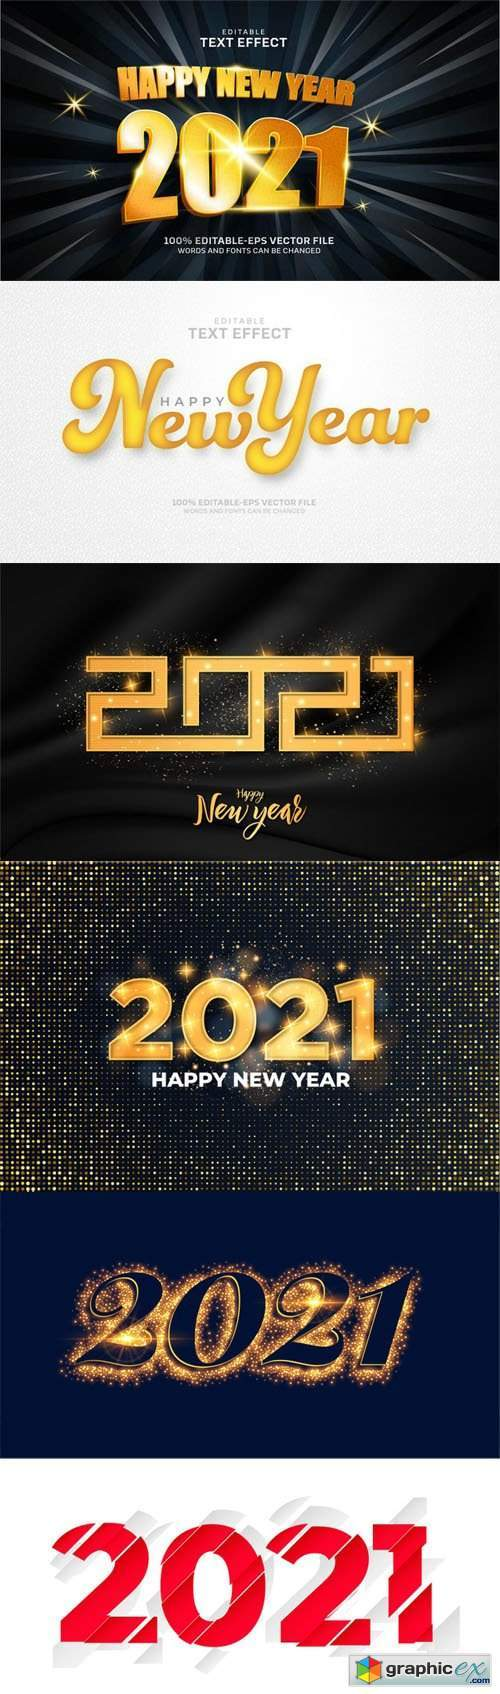 6 New Year 2021 Text Effects Vector Templates